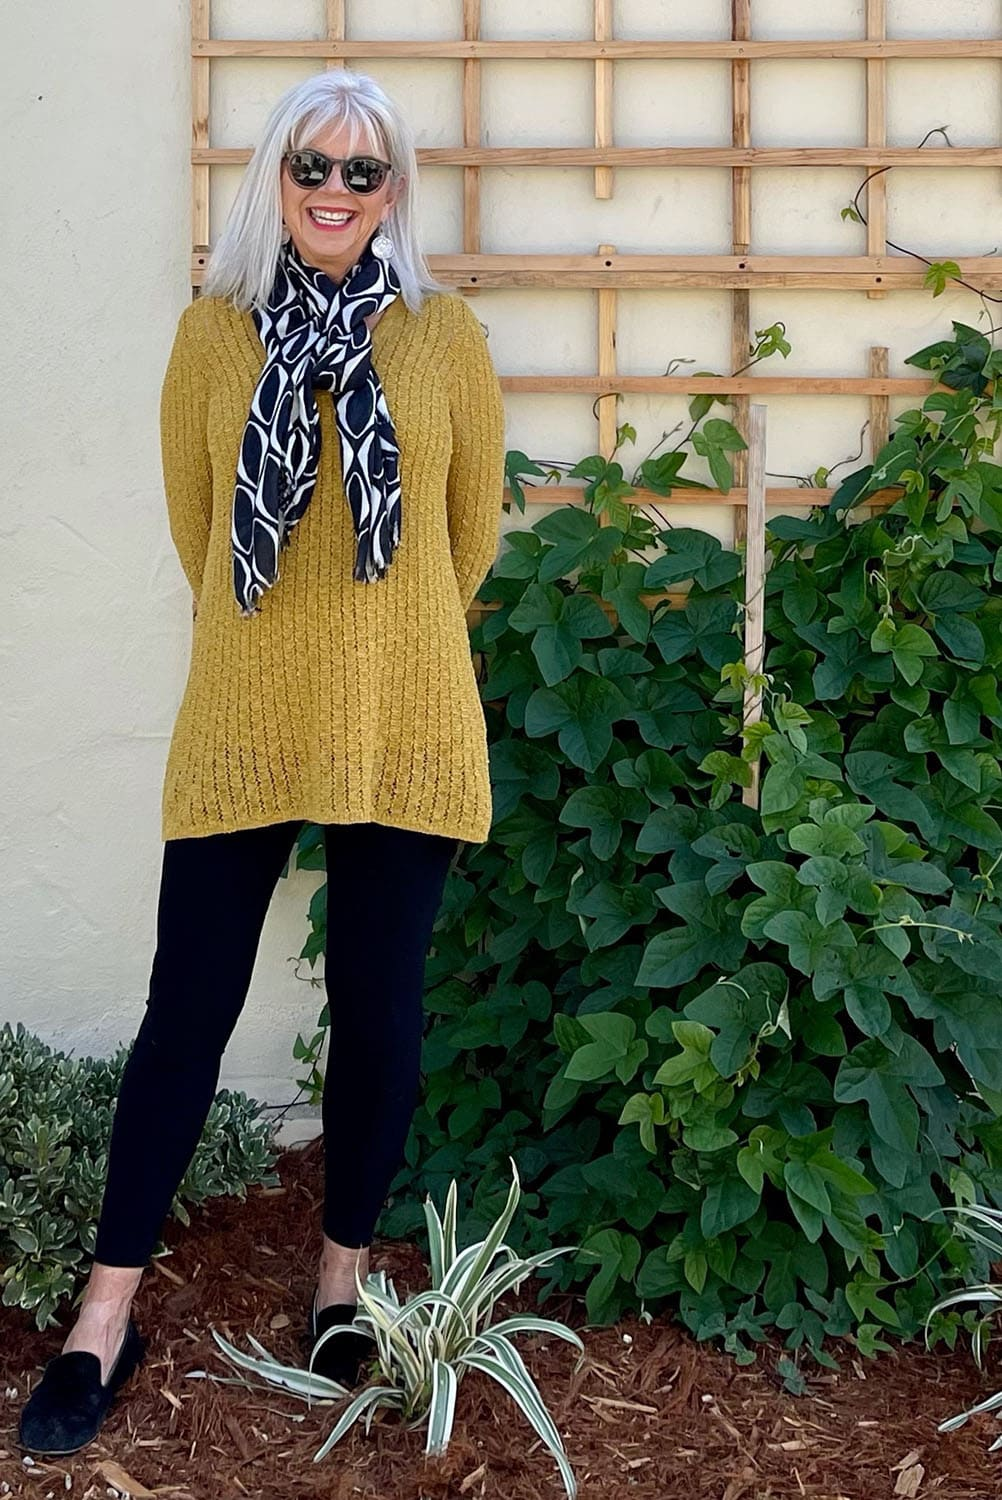 cindy hattersley in double looped scarf